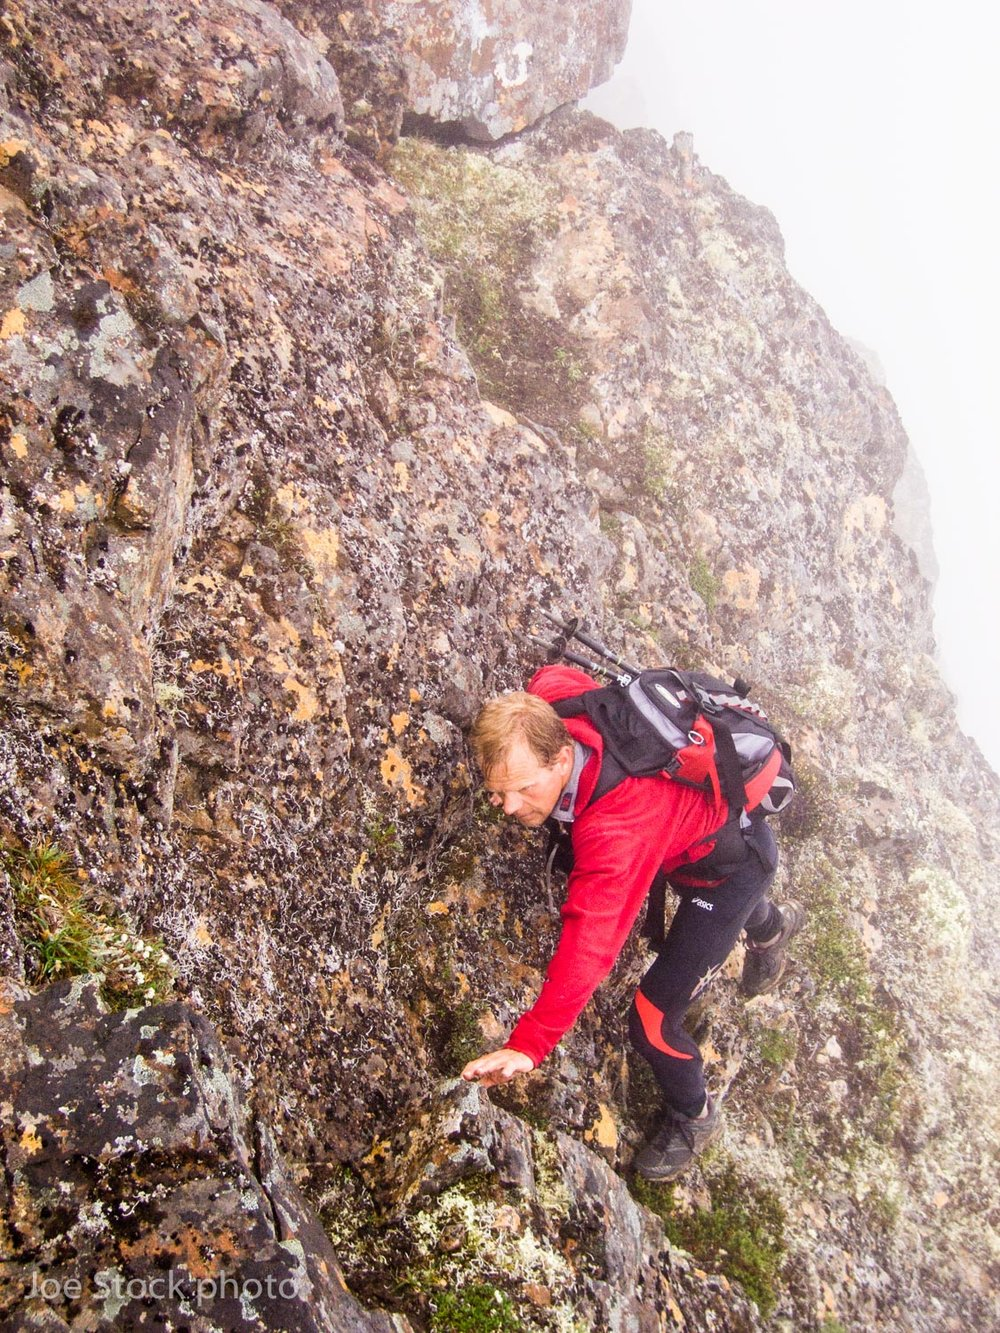 The difficulty of the linkup is learning if each section of ridge is better traversed or avoided. Fog can help, making exposed traverses less fearsome by hiding the abyss.